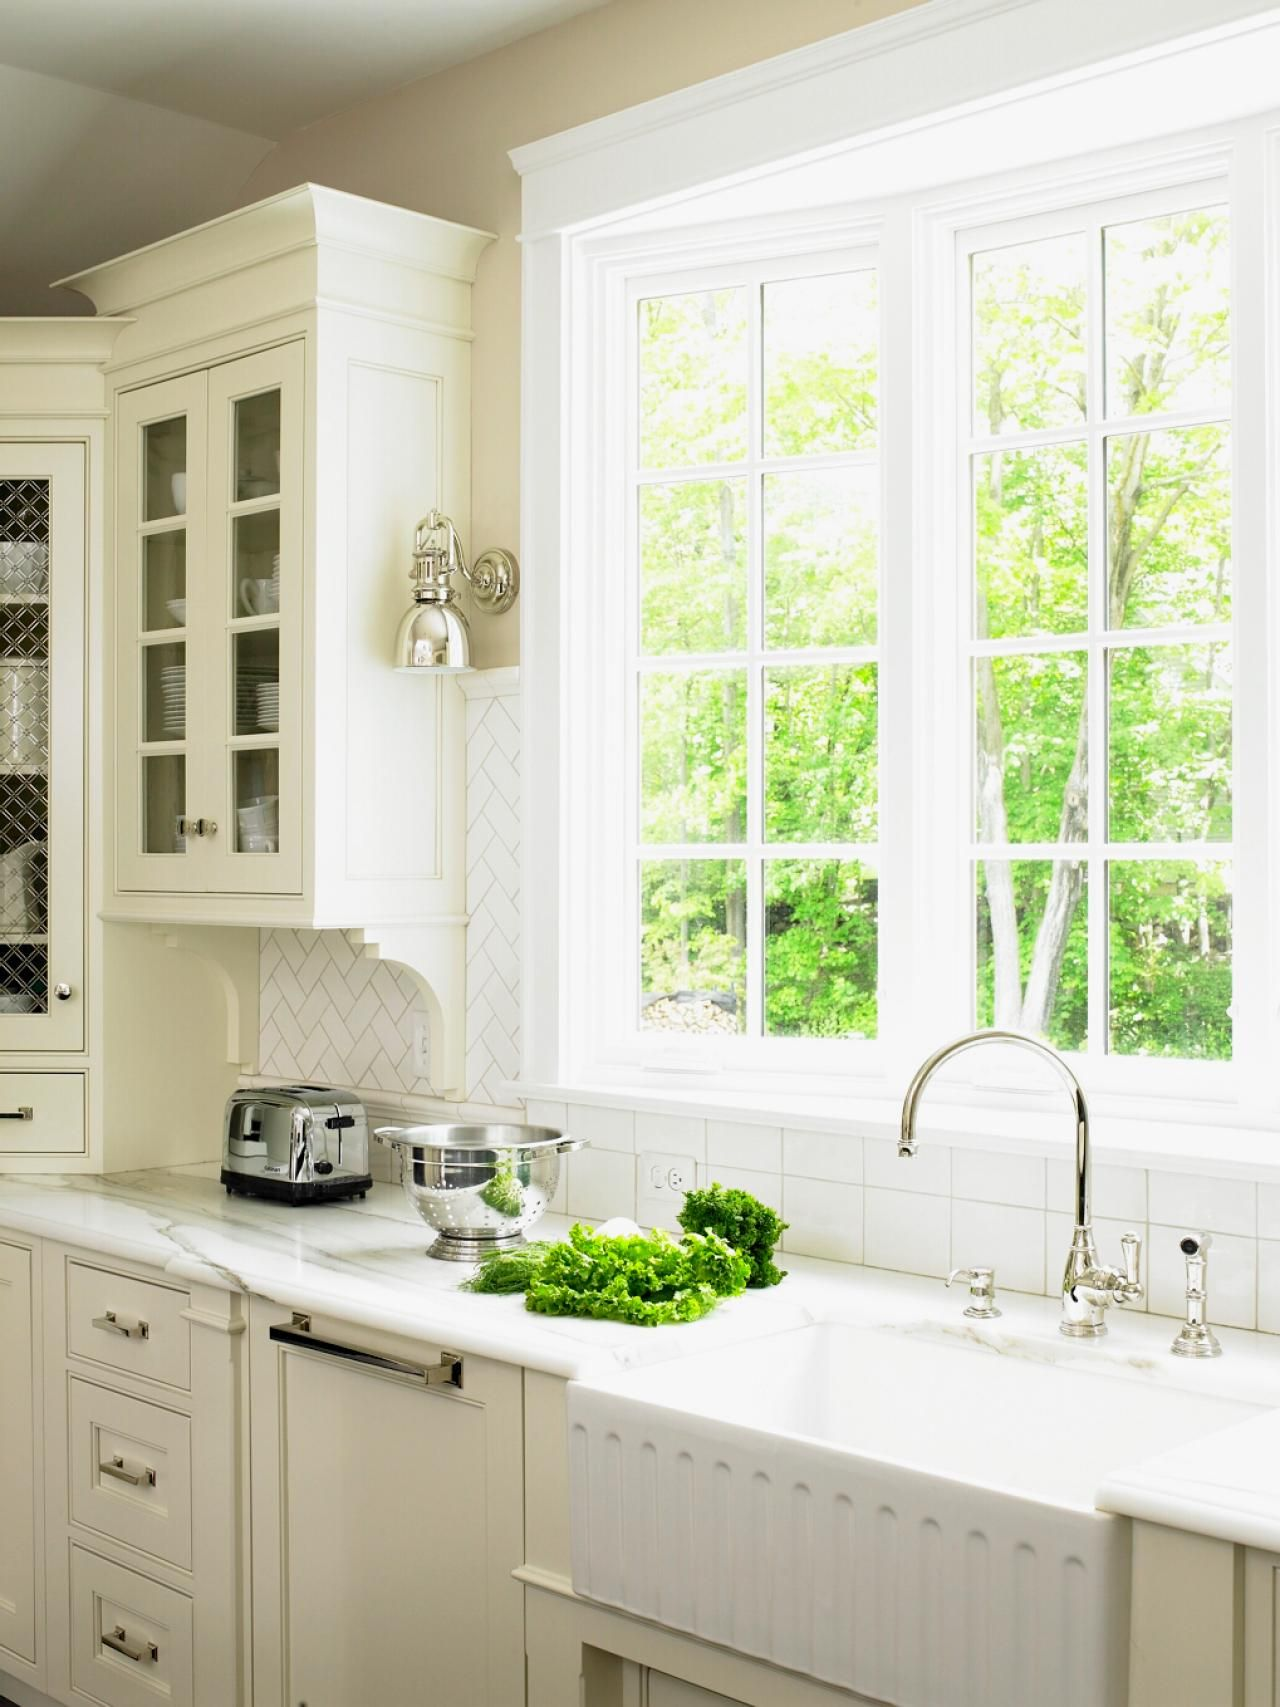 Kitchen Window Pictures: The Best Options, Styles